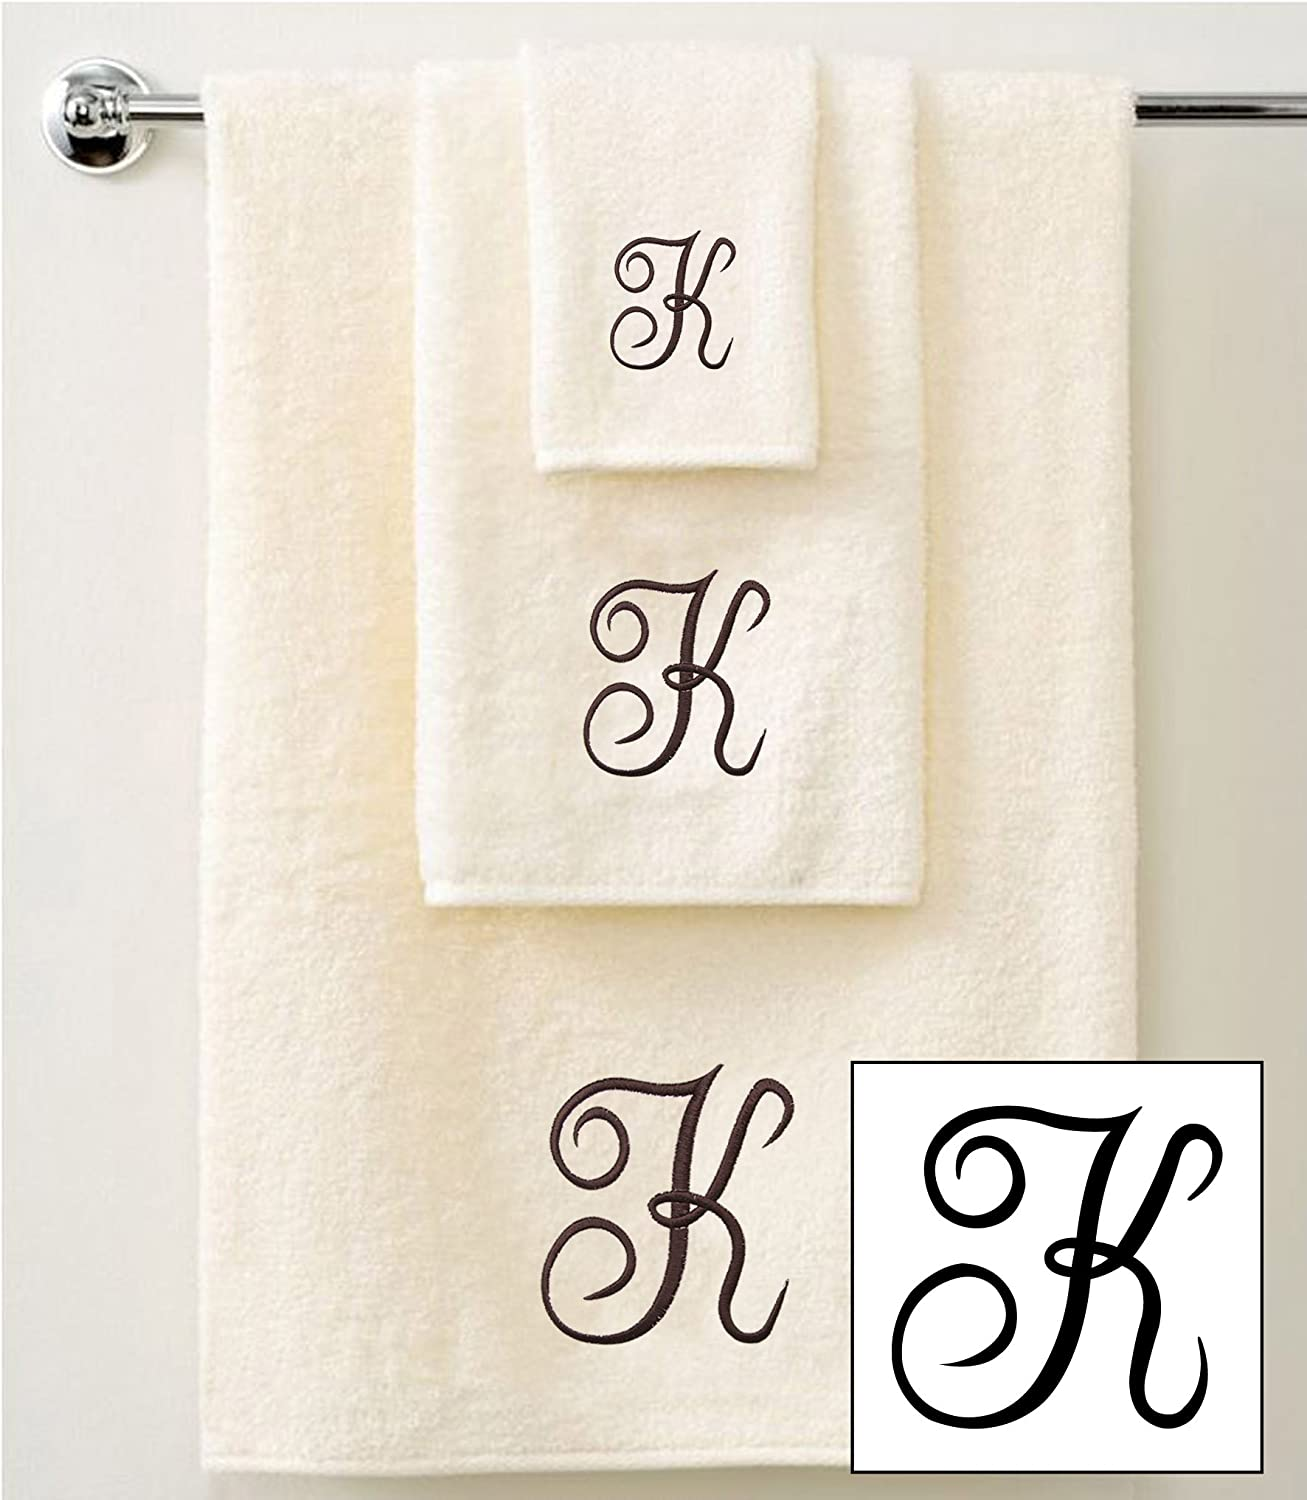 IvoryBrown A 1 Hand Towels and 1 Guest Towels QCS Personalised Embroidered 3 Piece Towel Set in Brown Script 100/% Cotton 600 GSM 1 Bath Towels